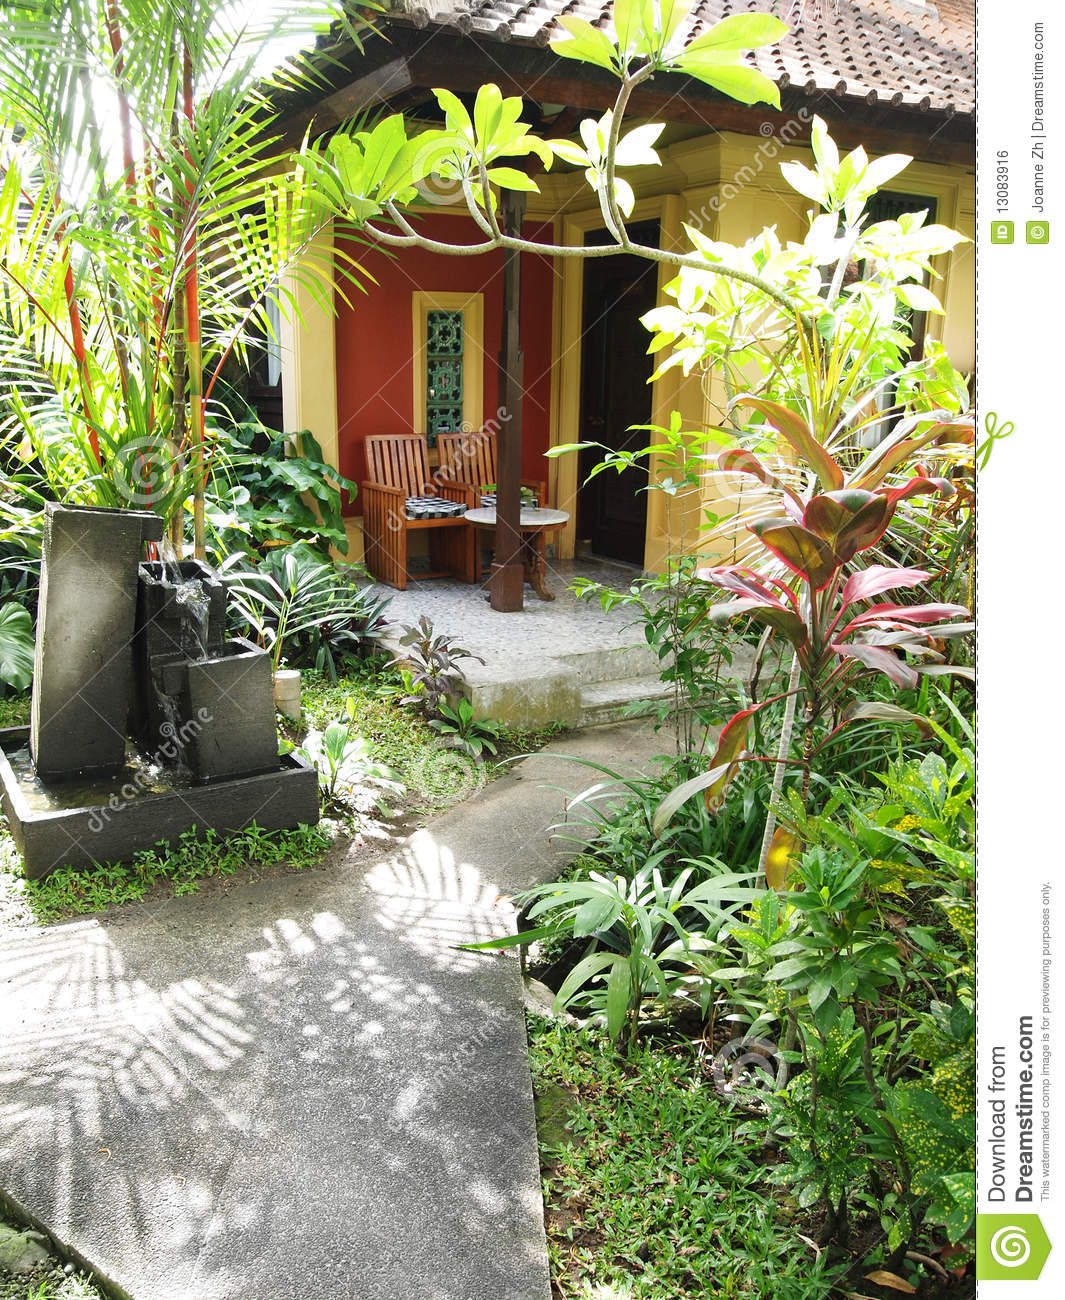 Bali Resort Patio Garden Royalty Free Stock Image - Image: 13083916